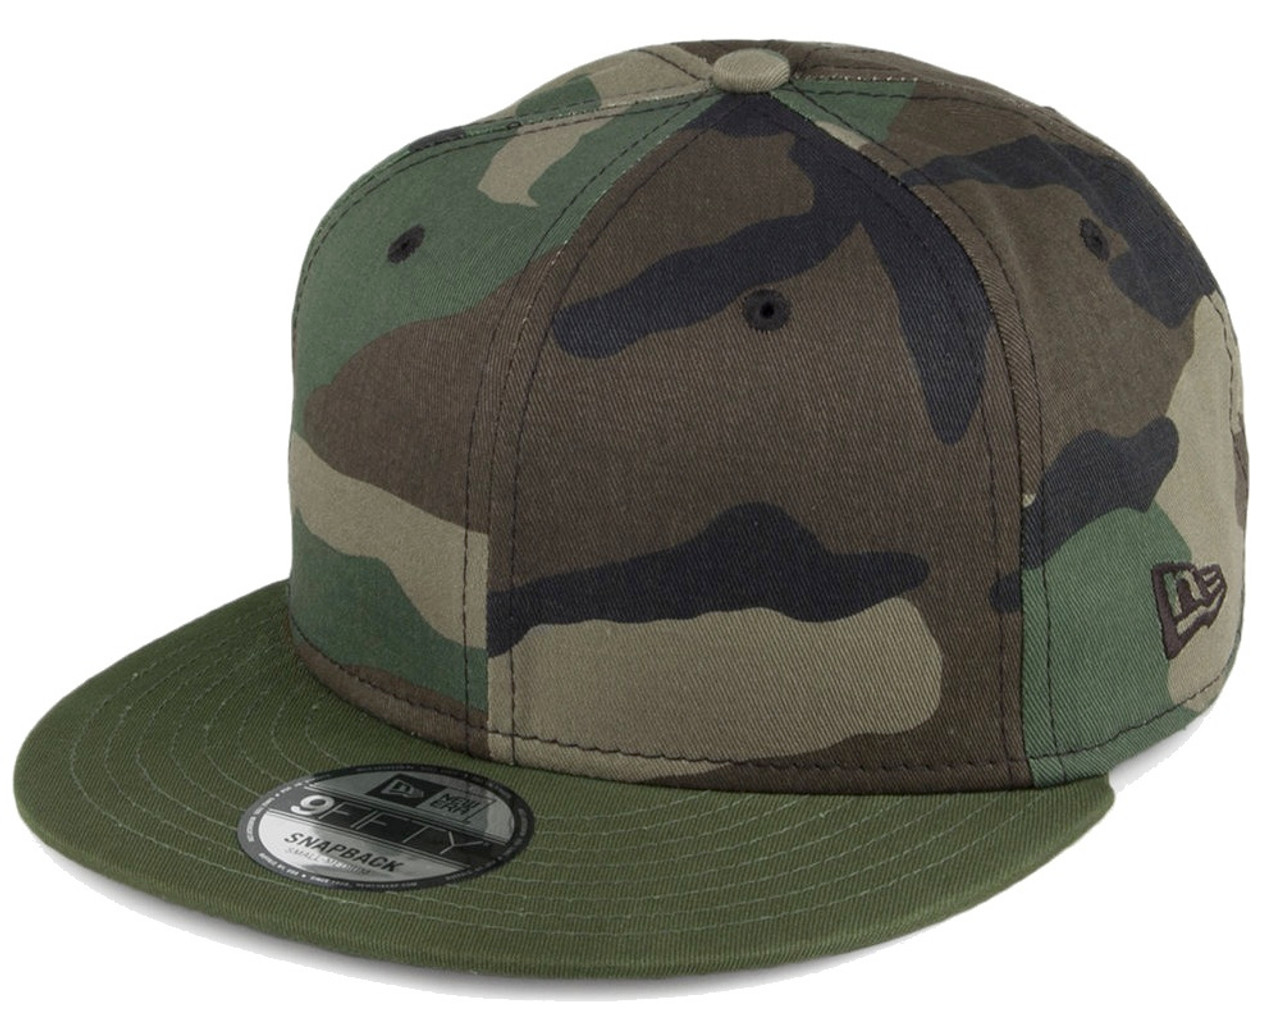 Plain   Blank Camo New Era 9FIFTY Snapback Hat with ! 1b2bf772e57